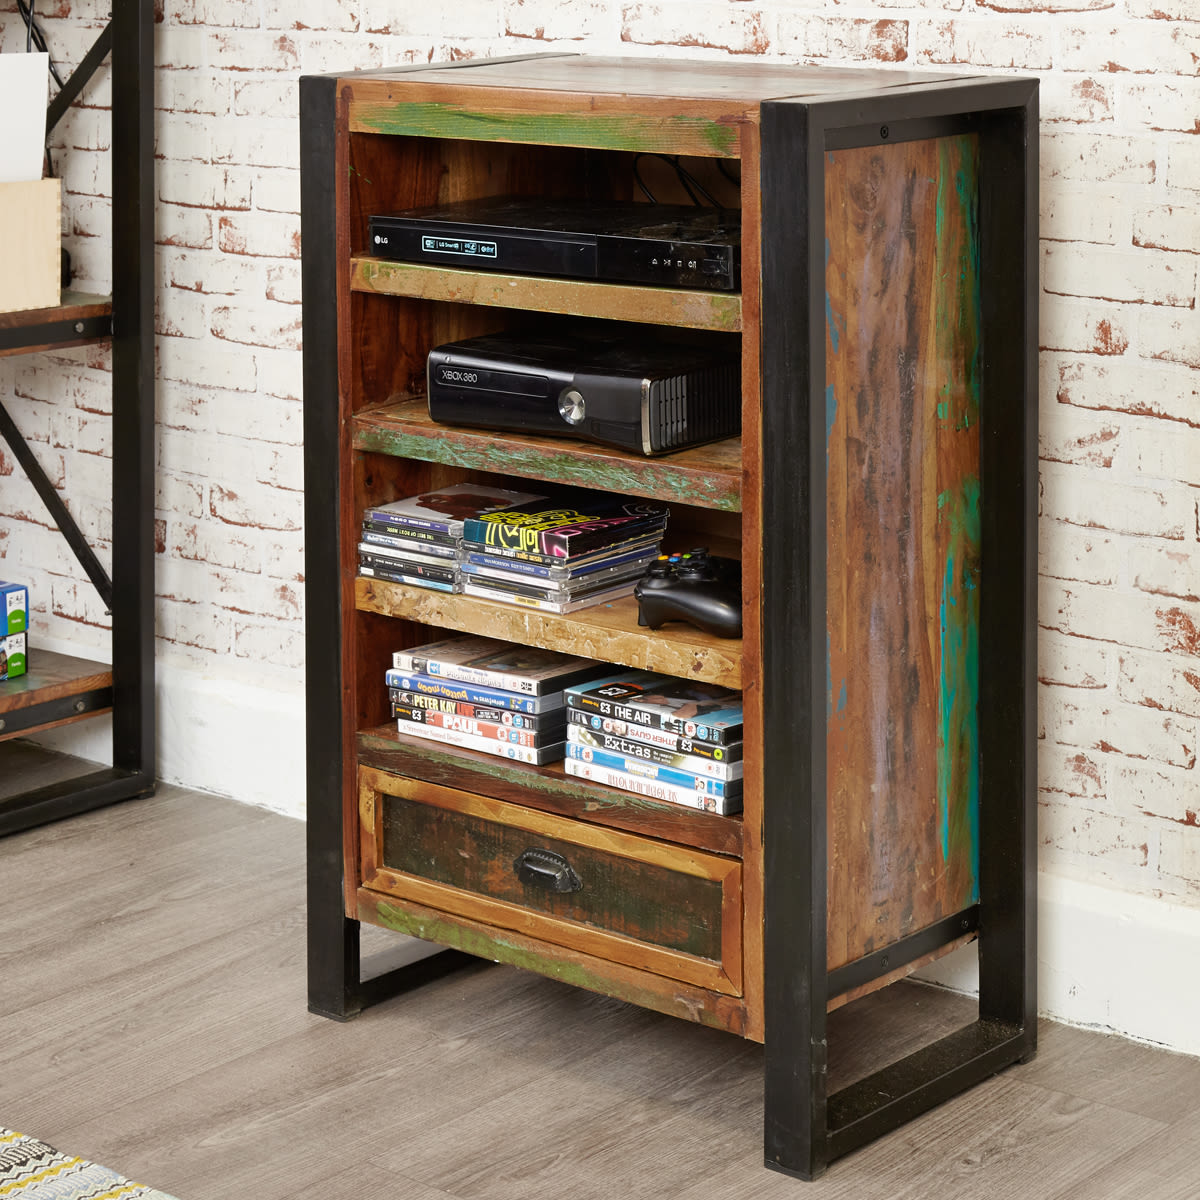 5 tips on choosing the perfect TV cabinet